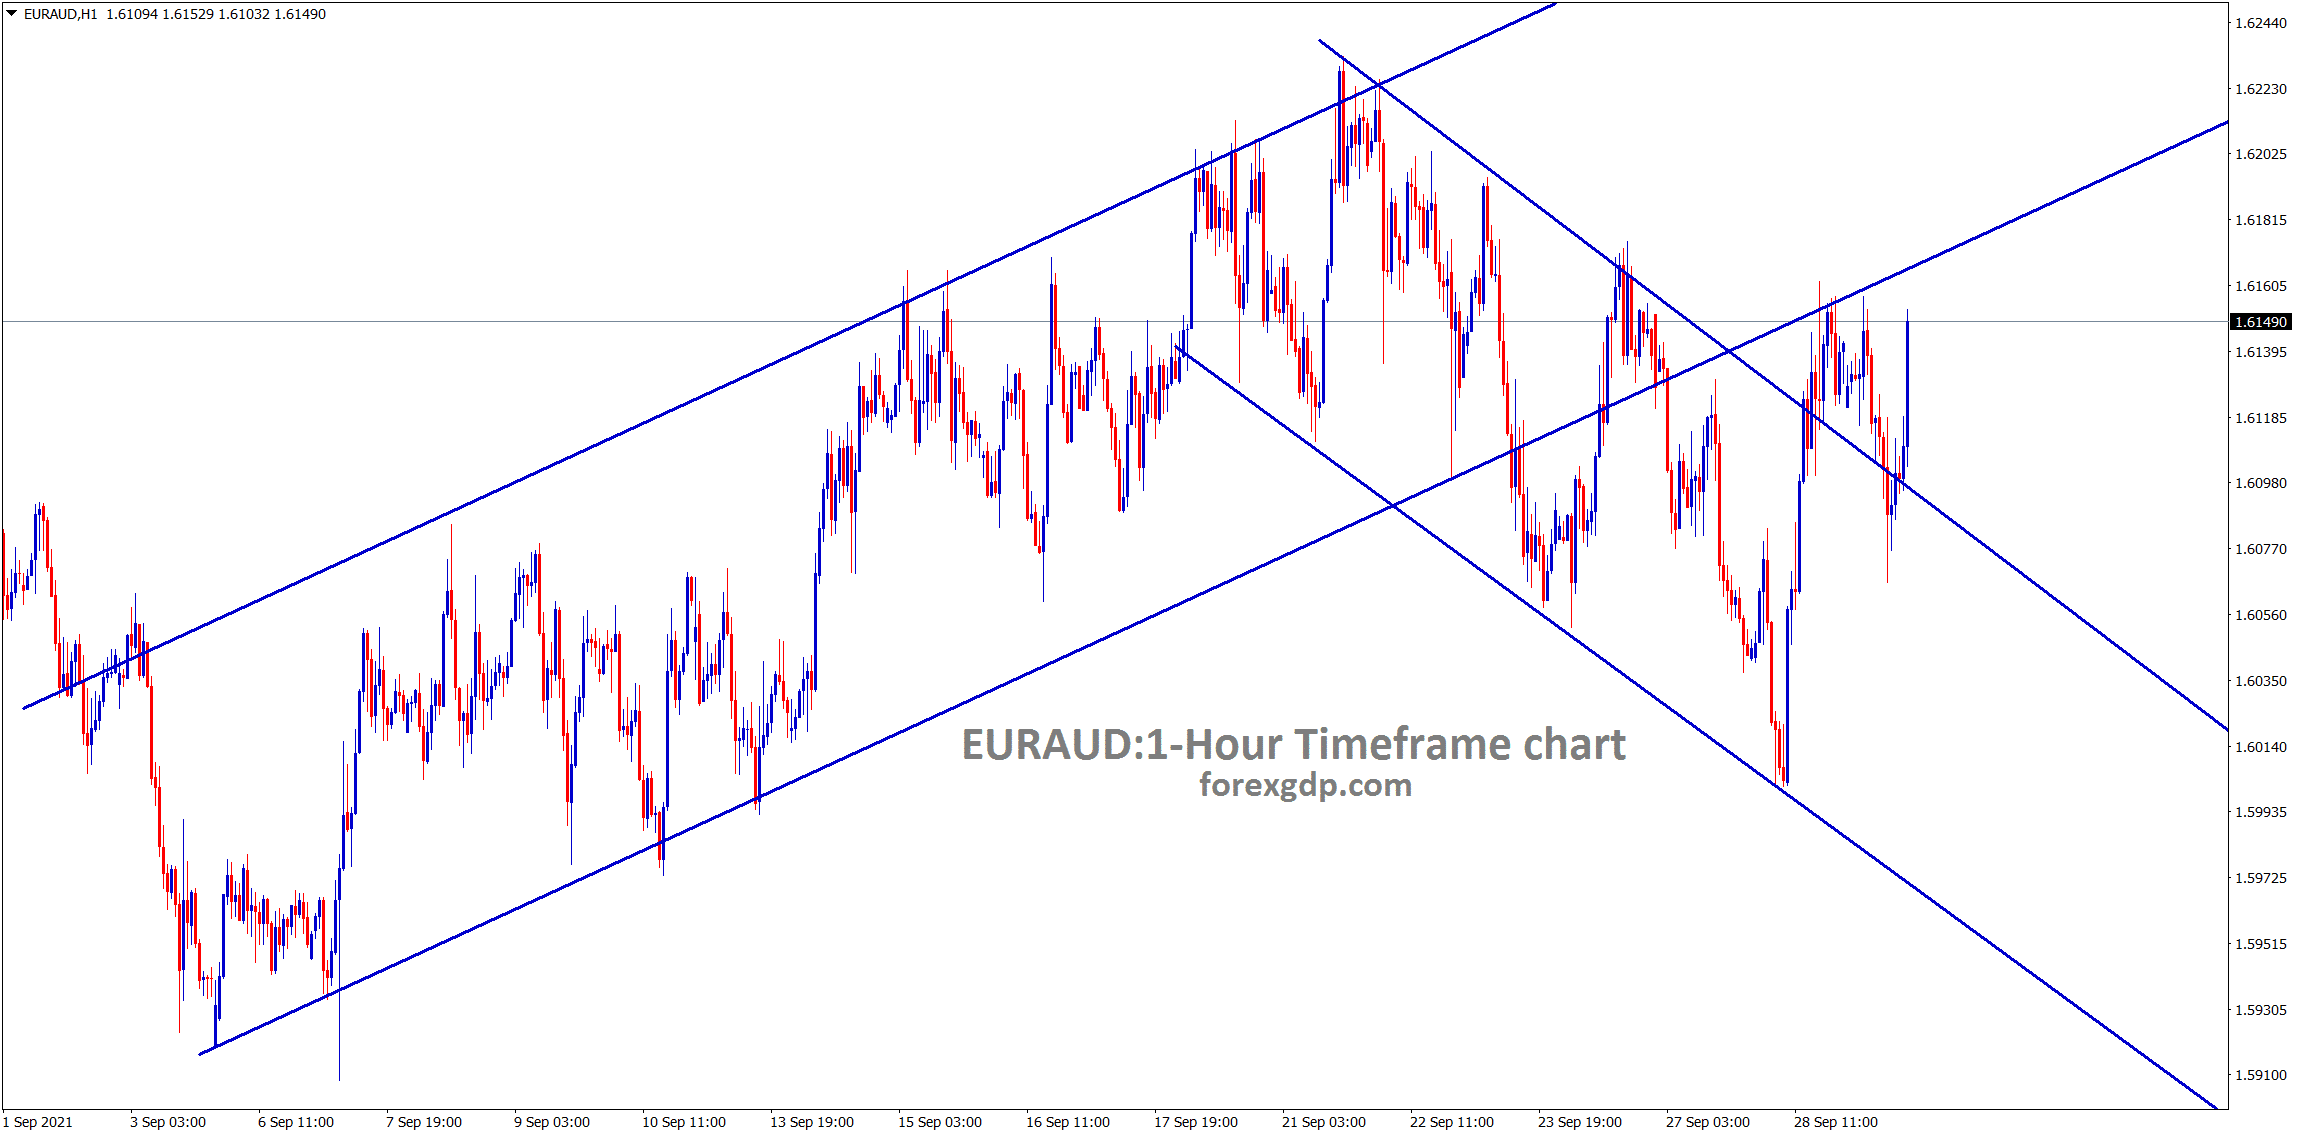 EURAUD is at the retest area of the channel line